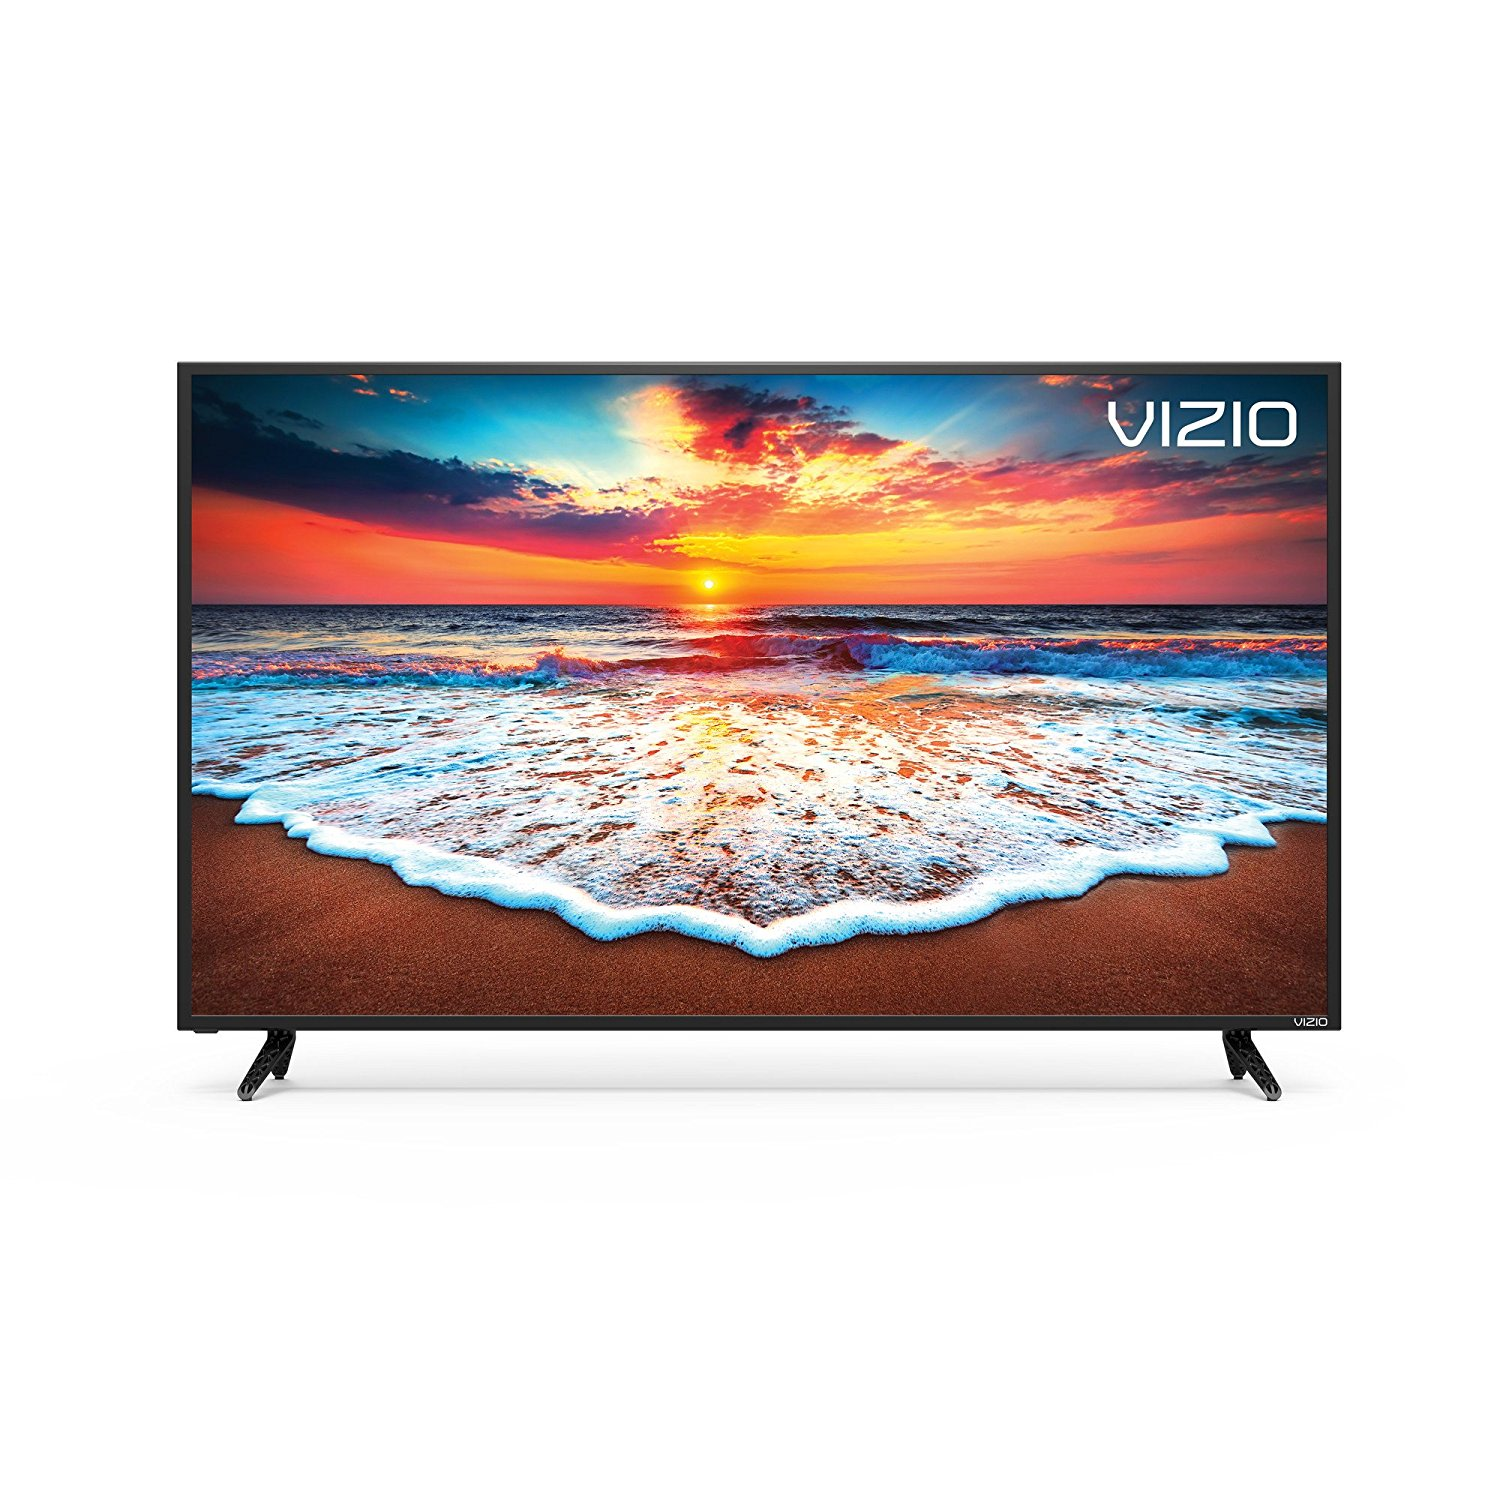 An image related to VIZIO D50f-E1 50-Inch FHD LED Smart TV